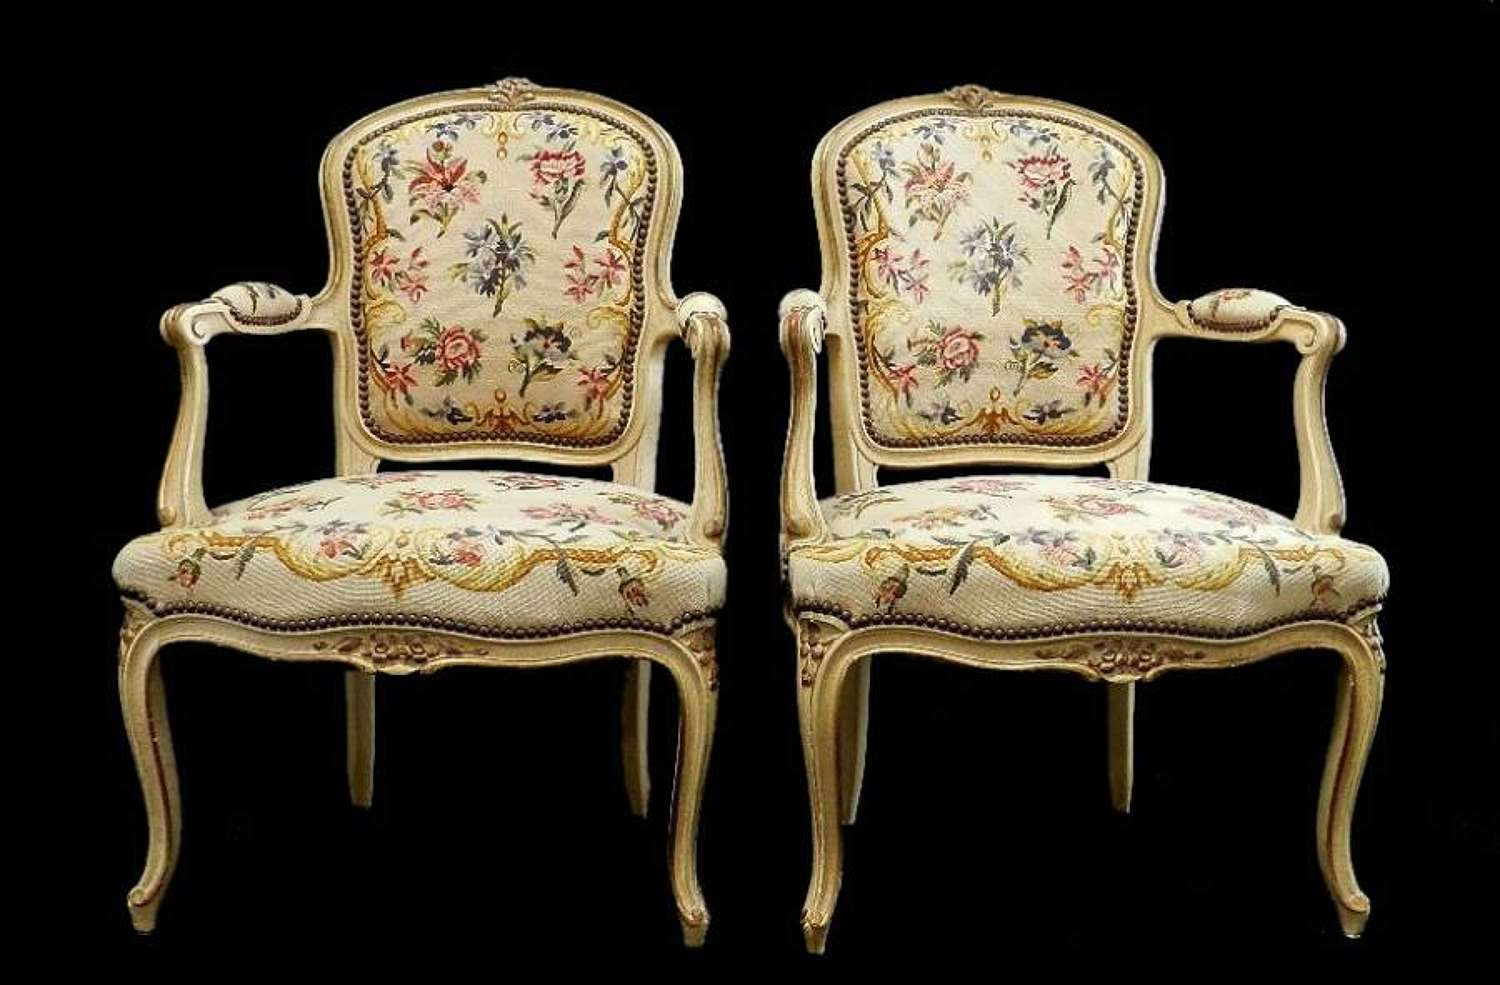 Exceptional Pair of French Fauteuil Armchairs by Hugnet Paris